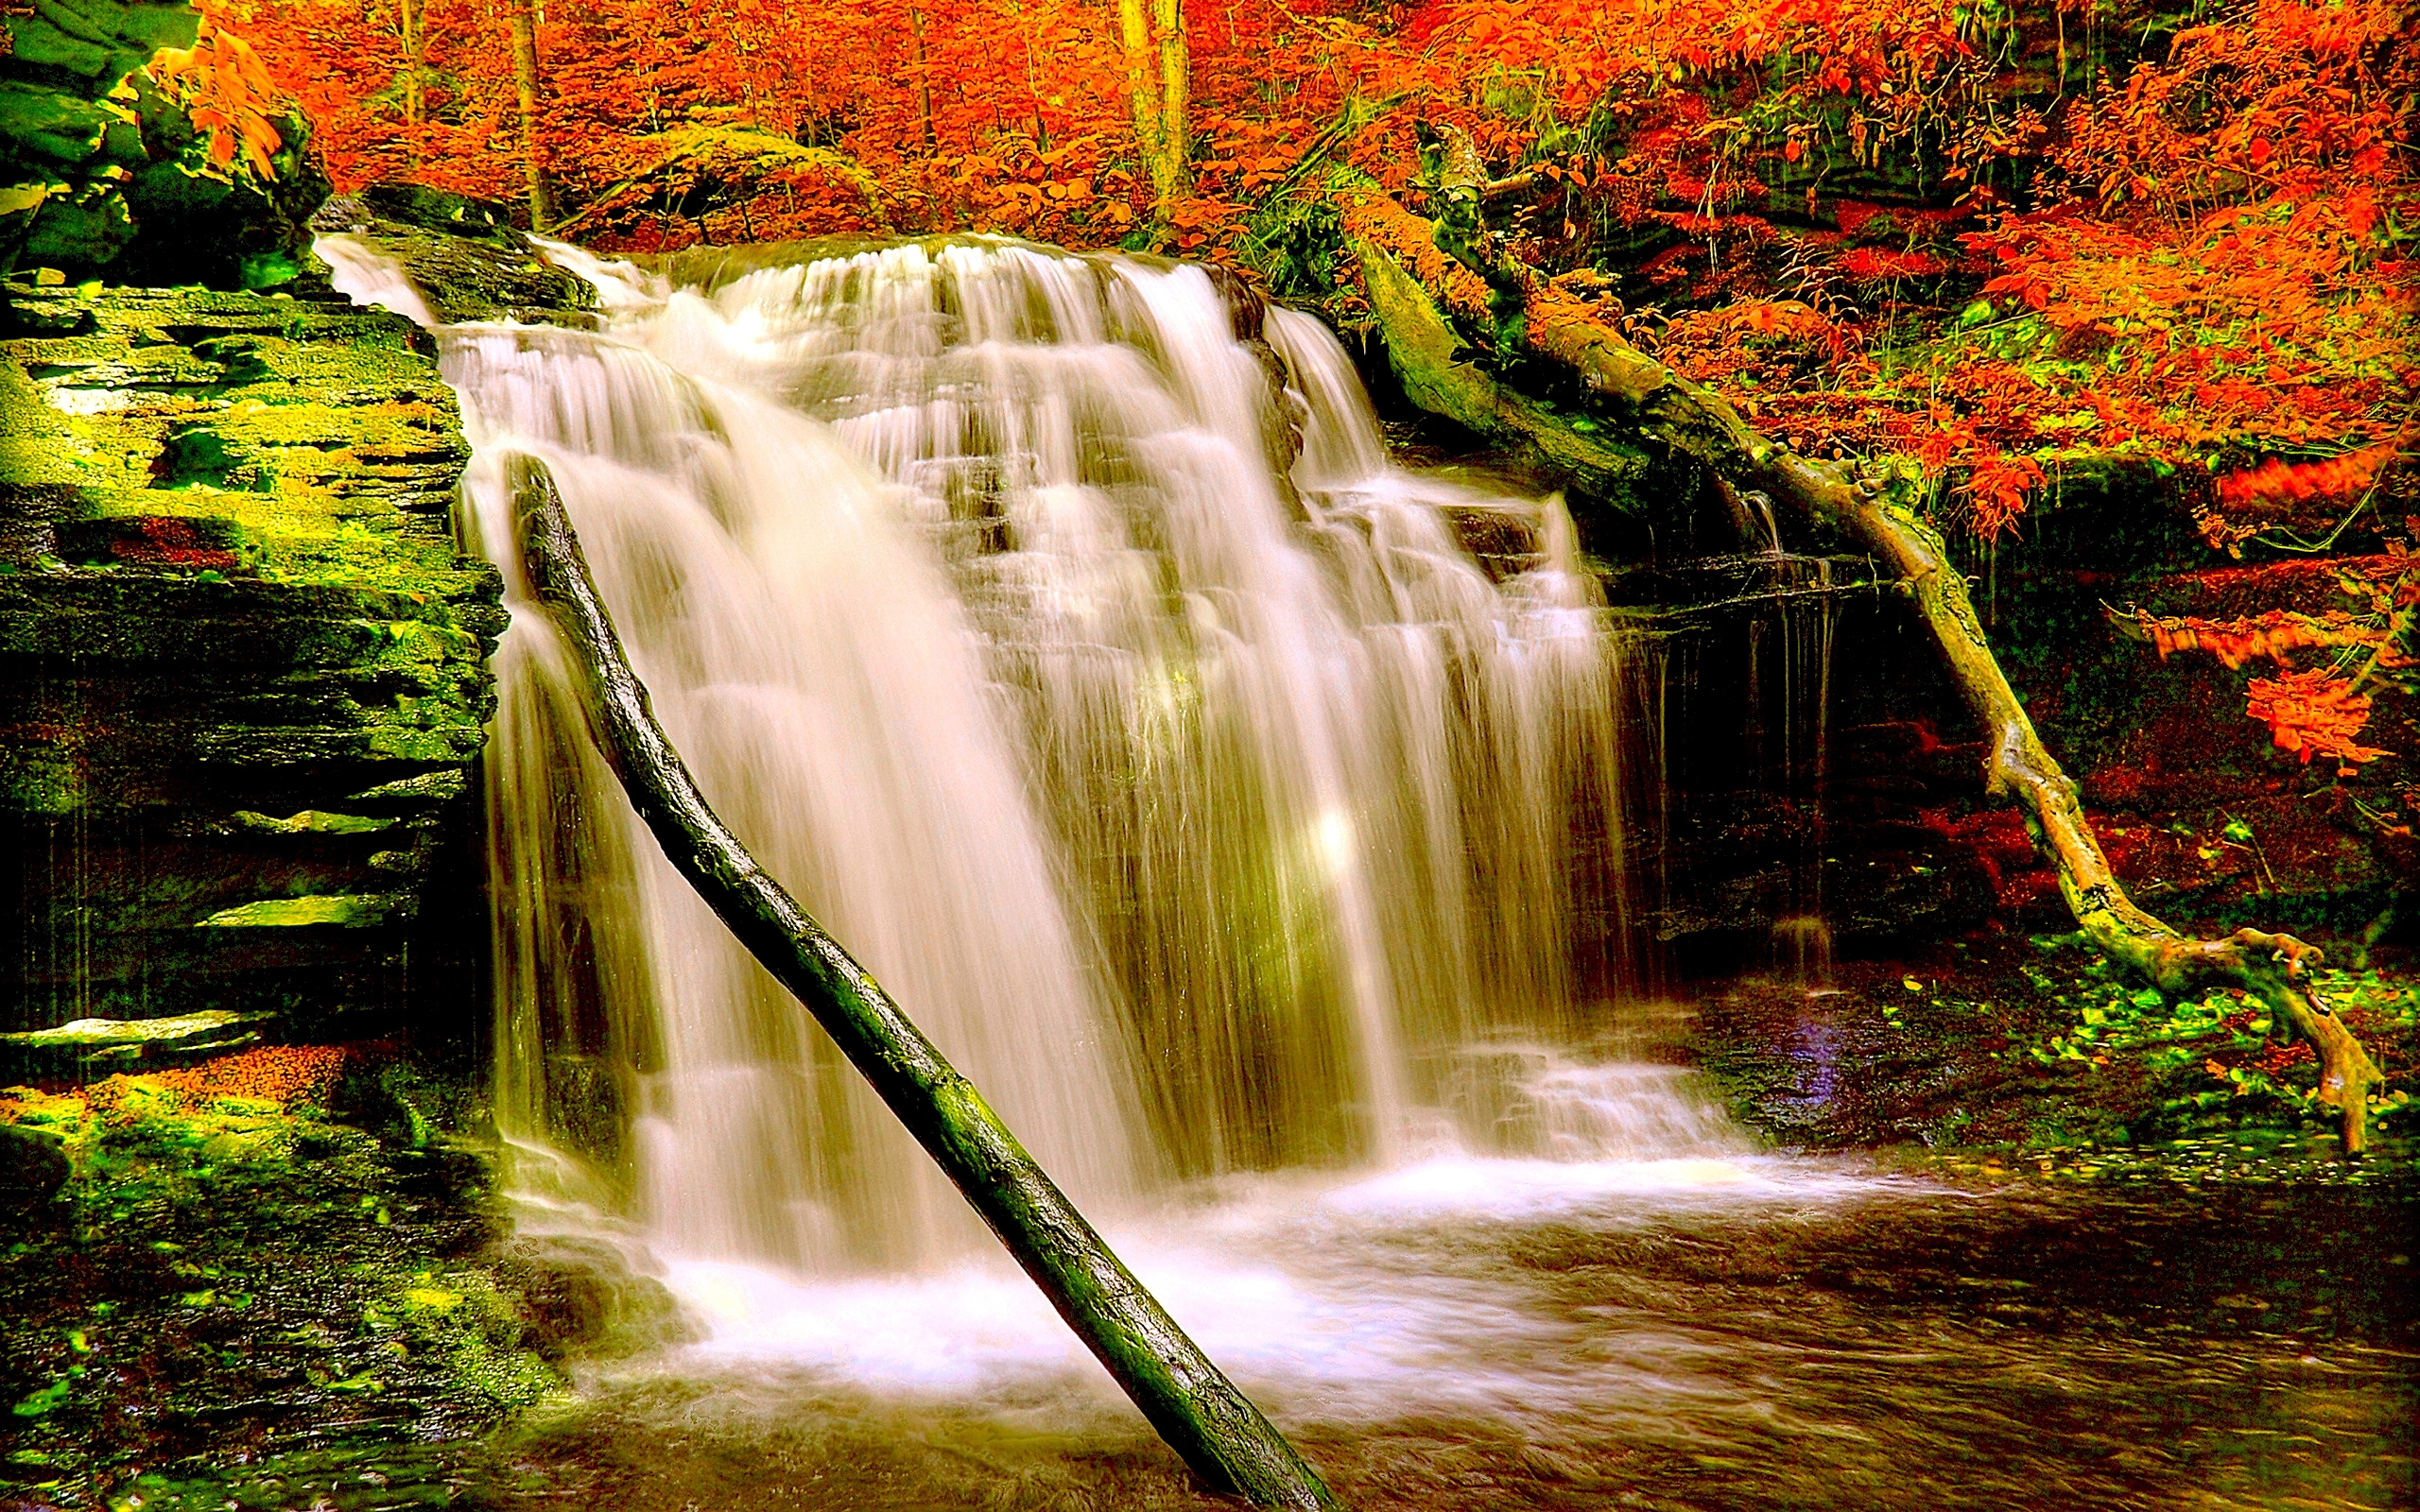 Iphone X Live Wallpaper For Android Autumn Forest Waterfall Nature Aiyumn Hd Background